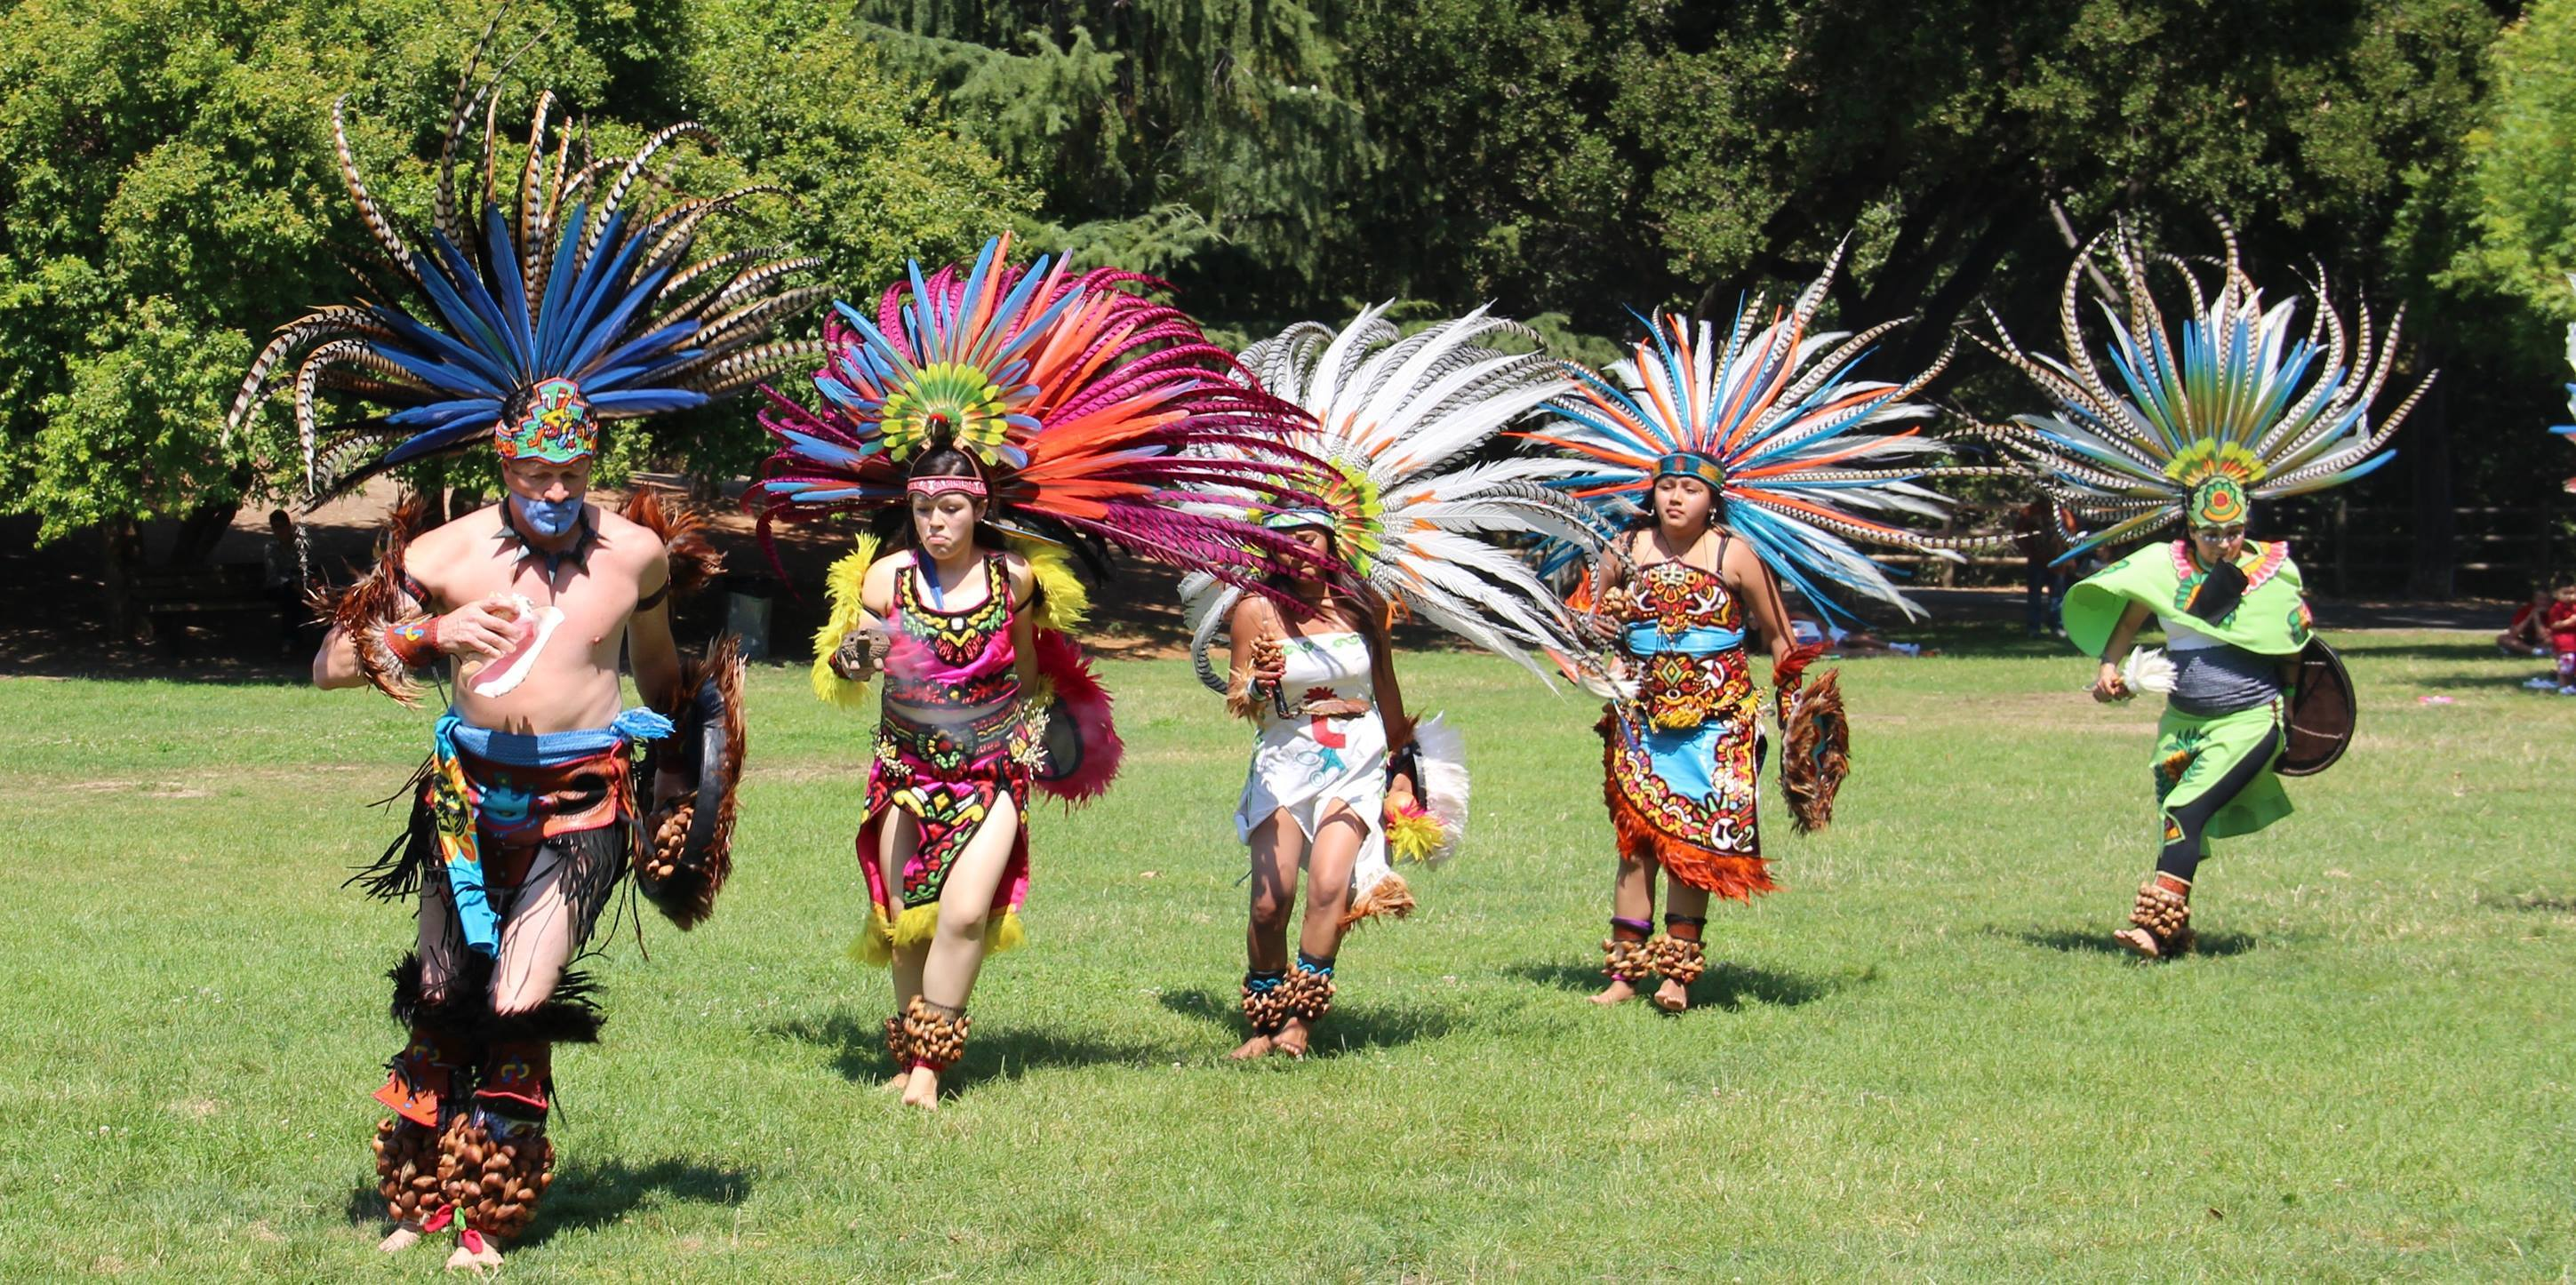 Aztec Dance Group Calpulli Tonalehqueh. Courtesy of Calpulli Tonalehqueh.